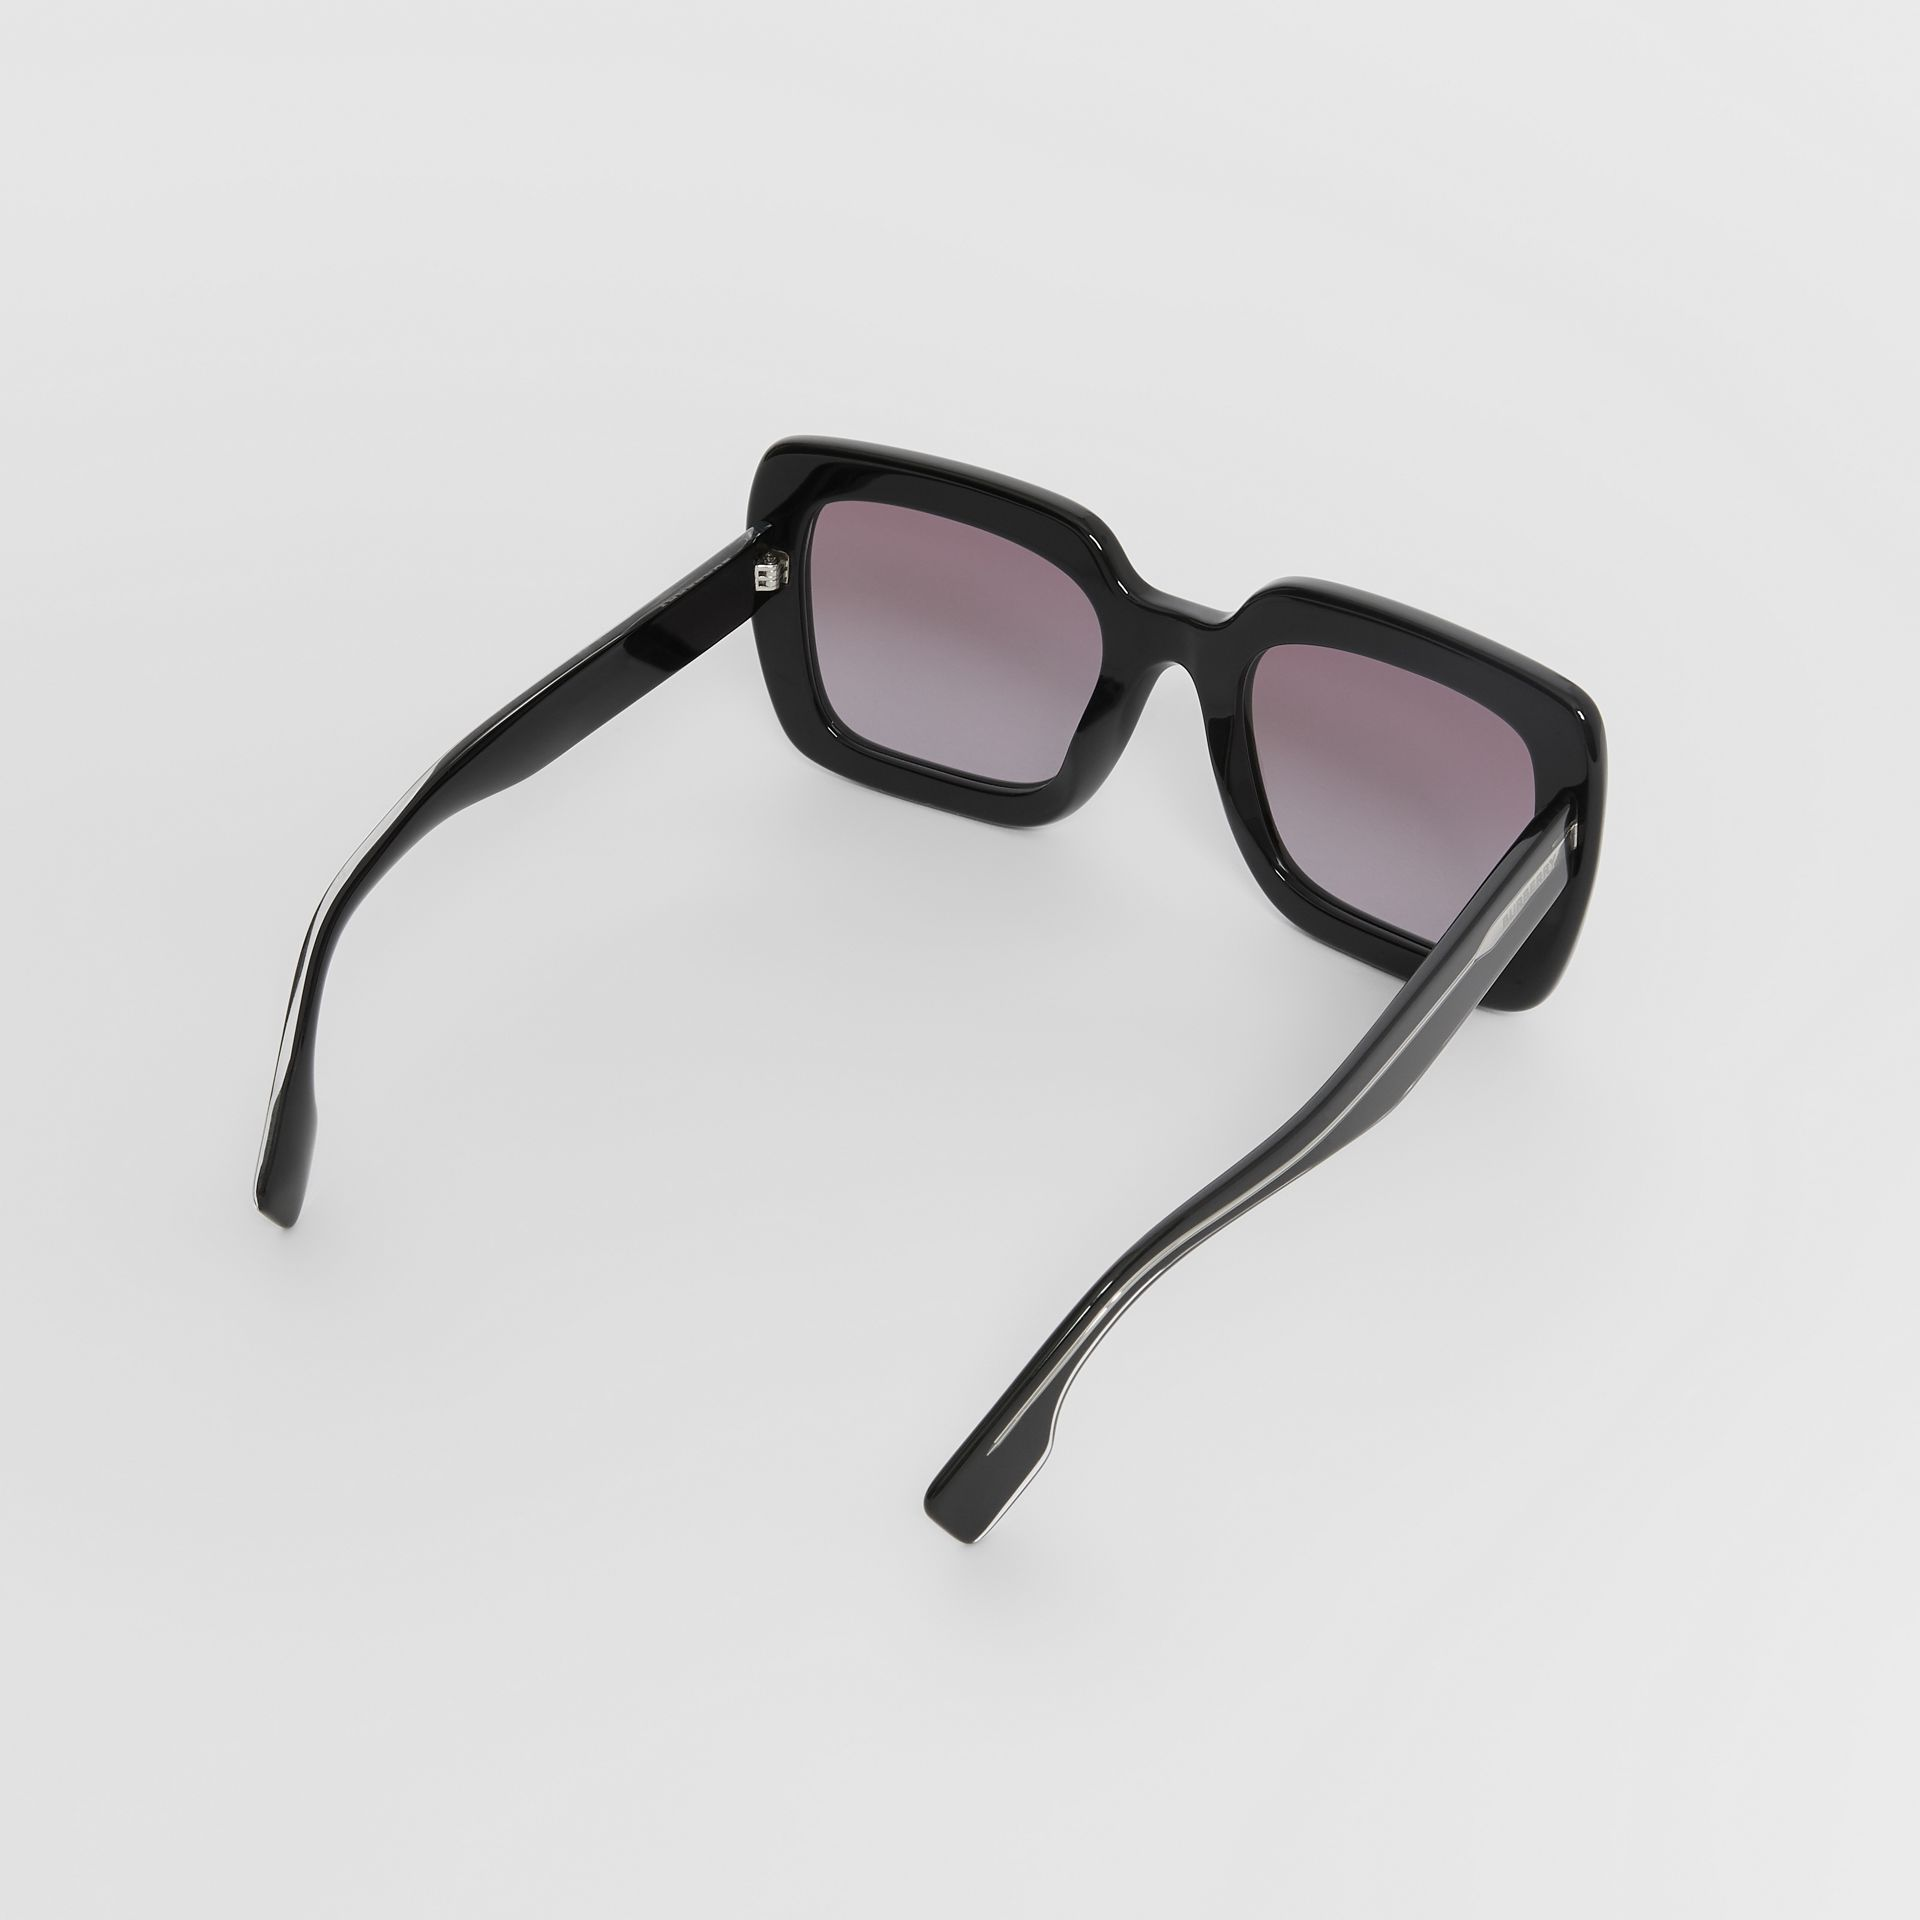 Oversized Square Frame Sunglasses in Black - Women | Burberry - gallery image 3